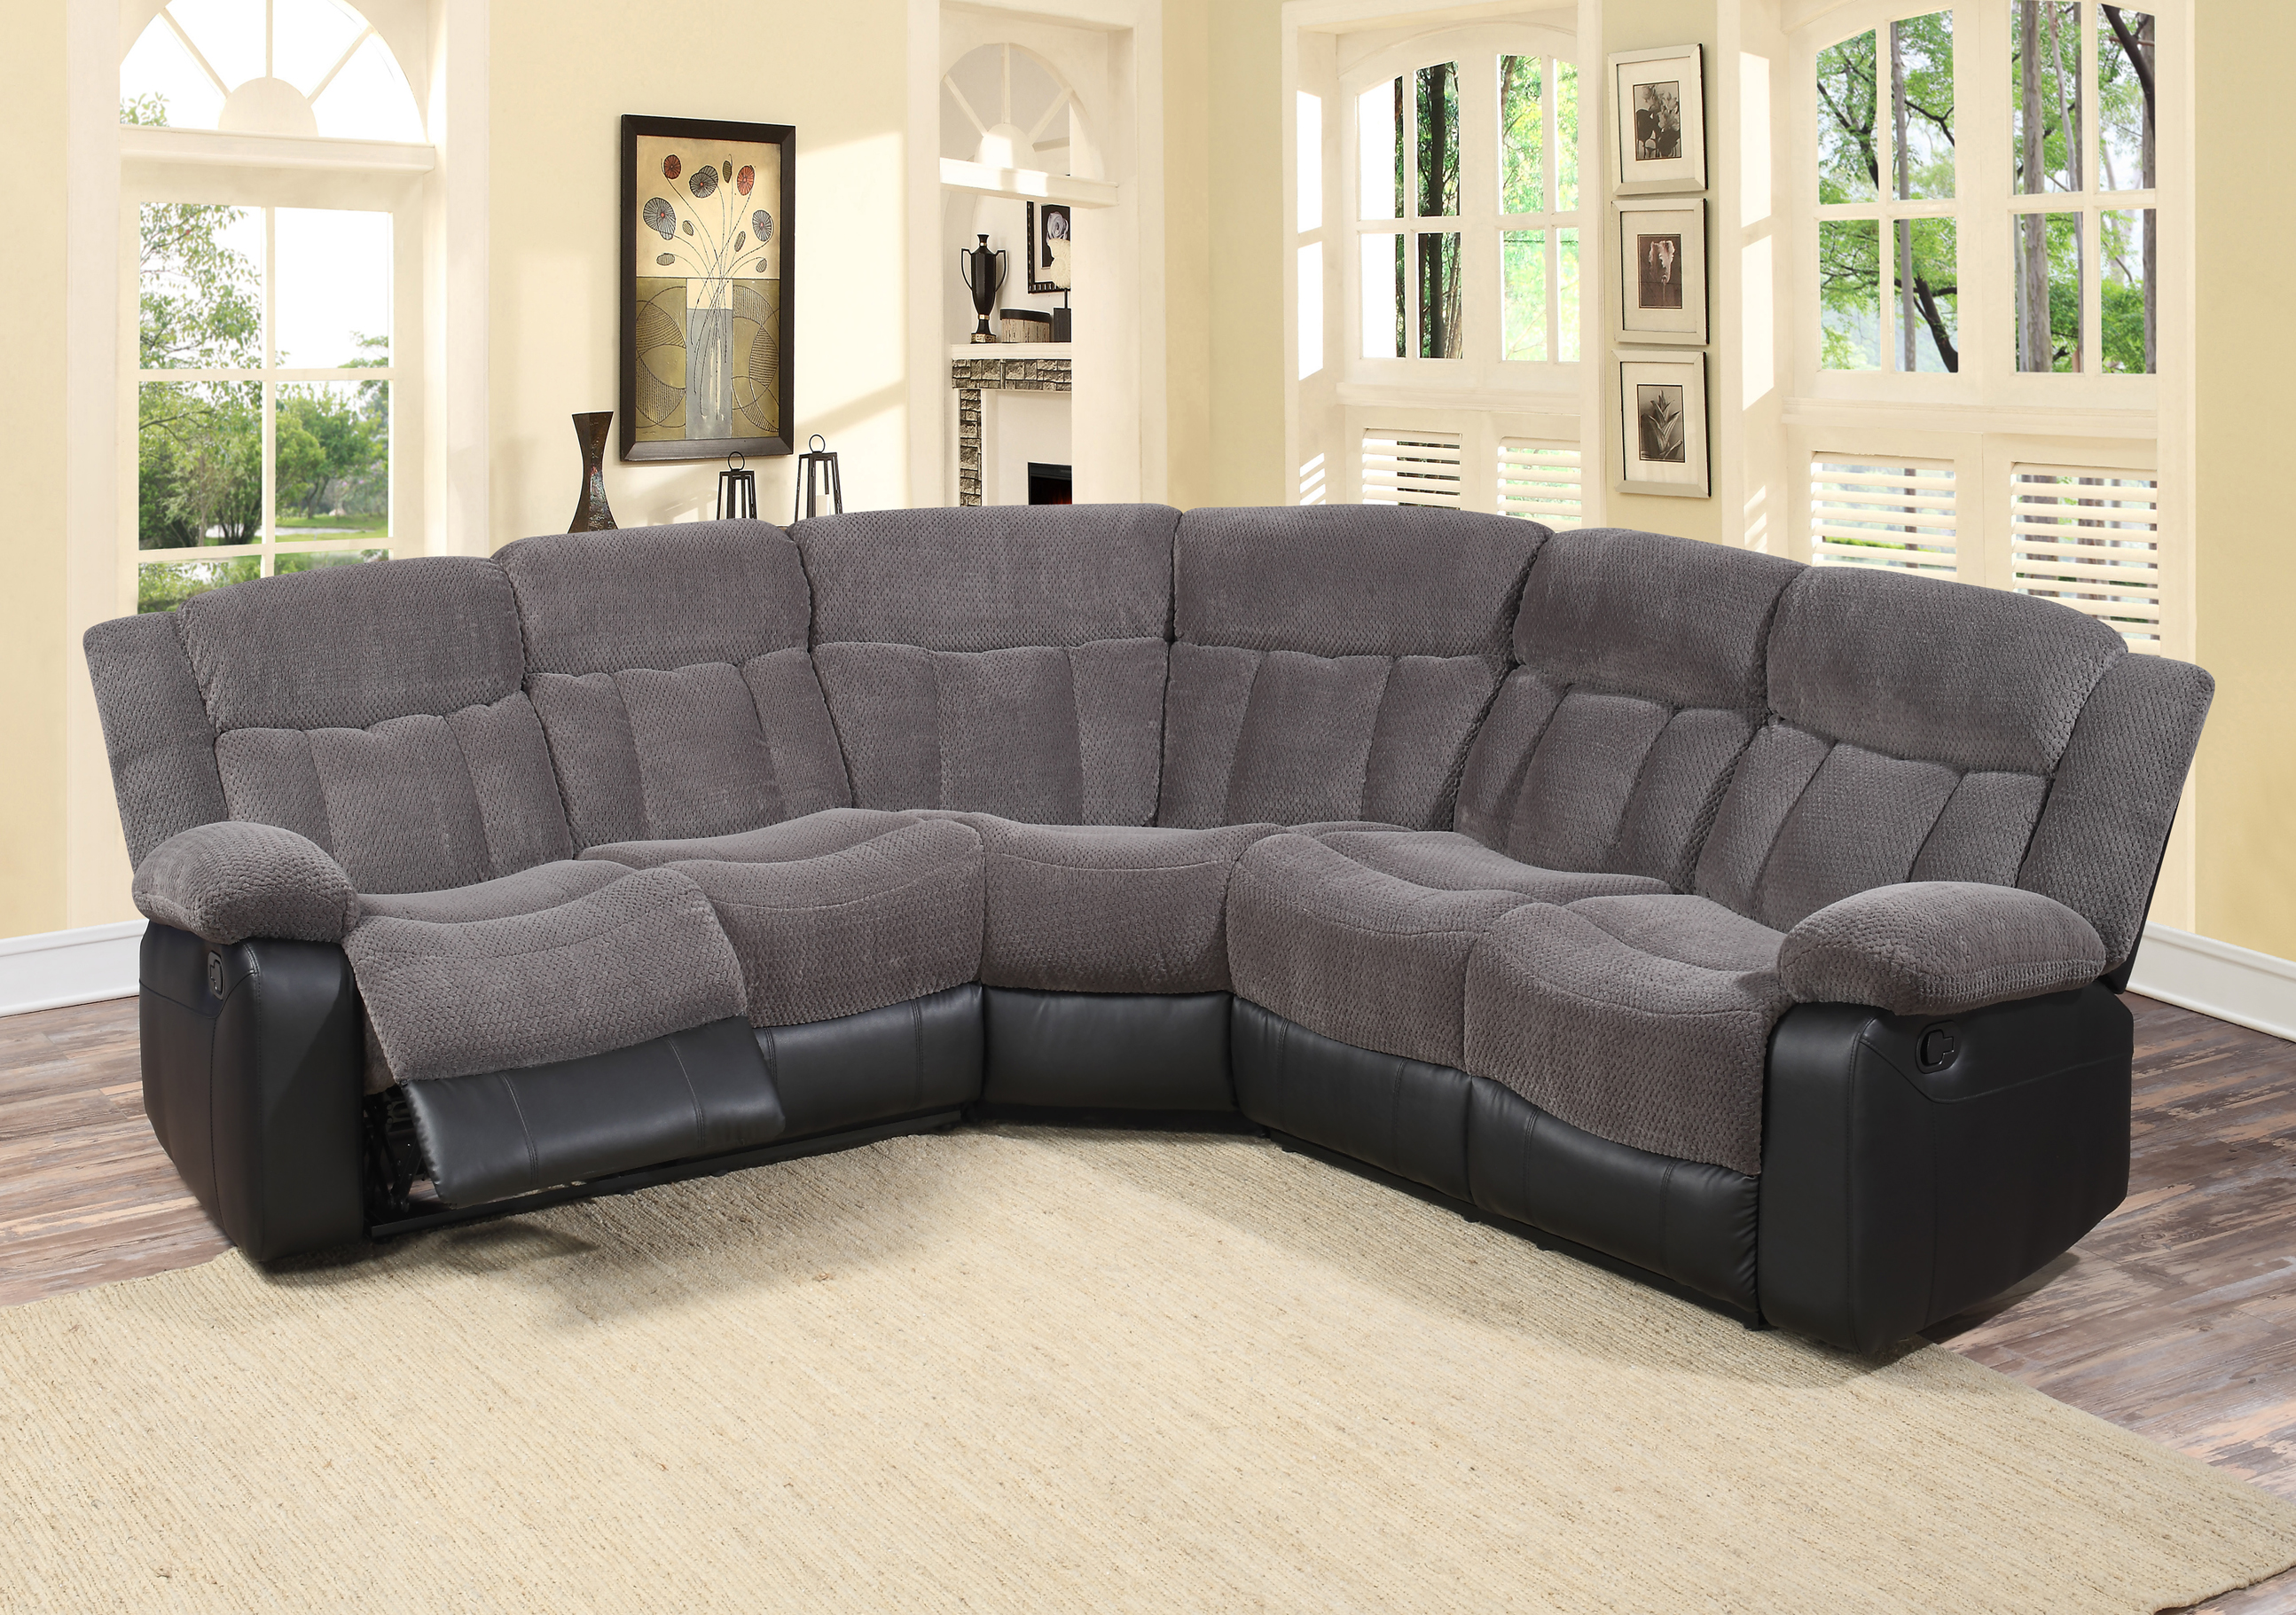 aubrey 3 pc grey fabric living room reclining sectional sofa set 3 piece sectional sofa